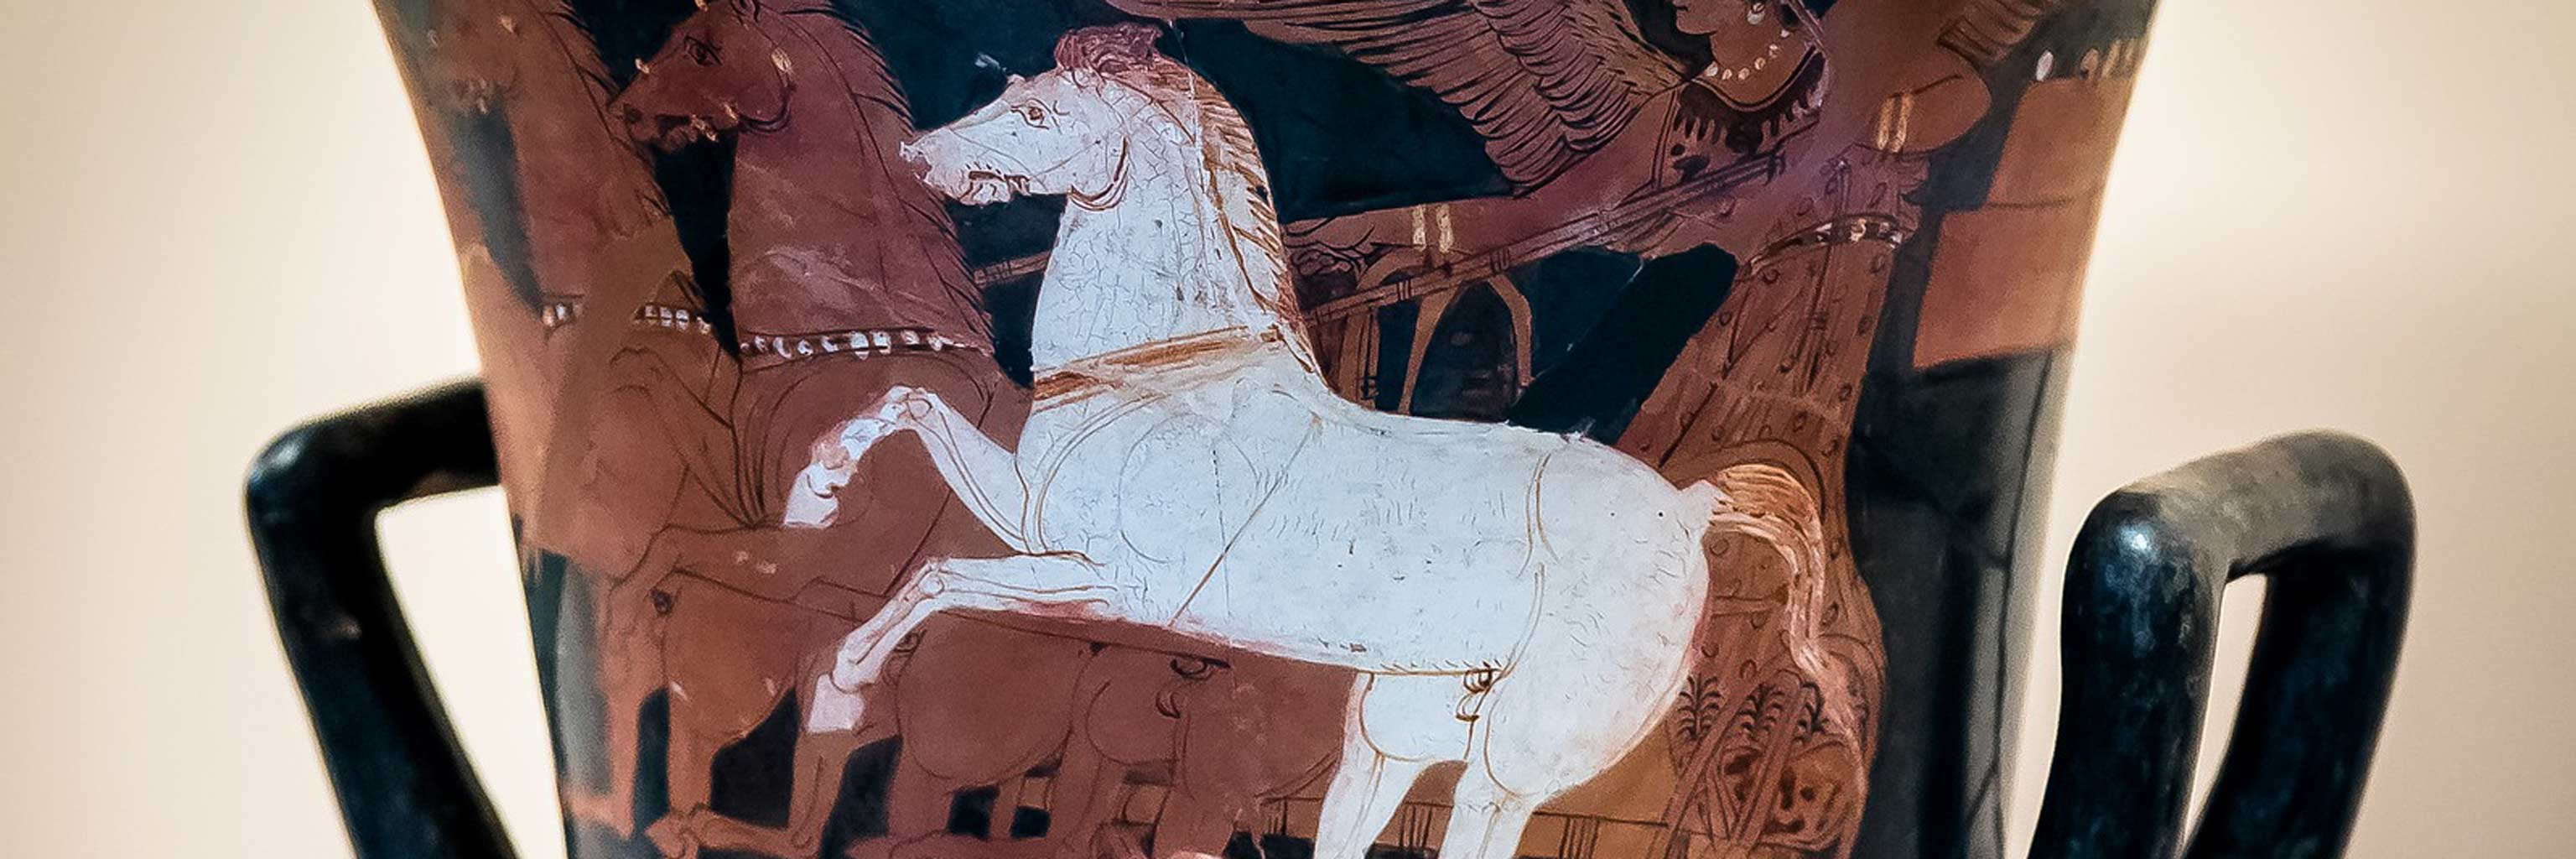 pottery of greek horses